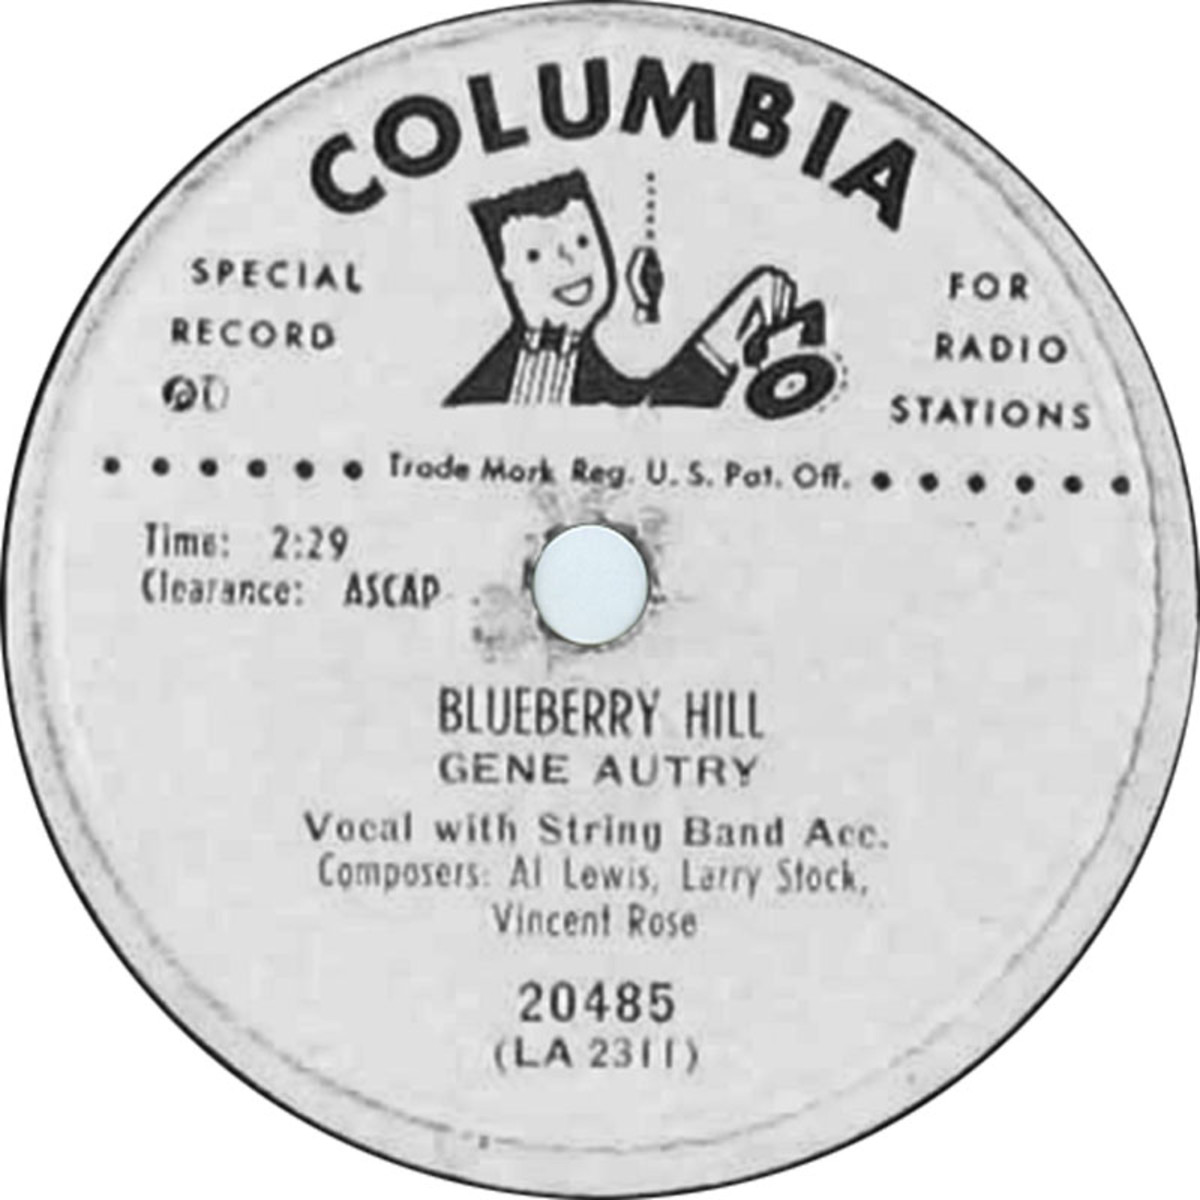 Gene Autry's LP of Blueberry Hill